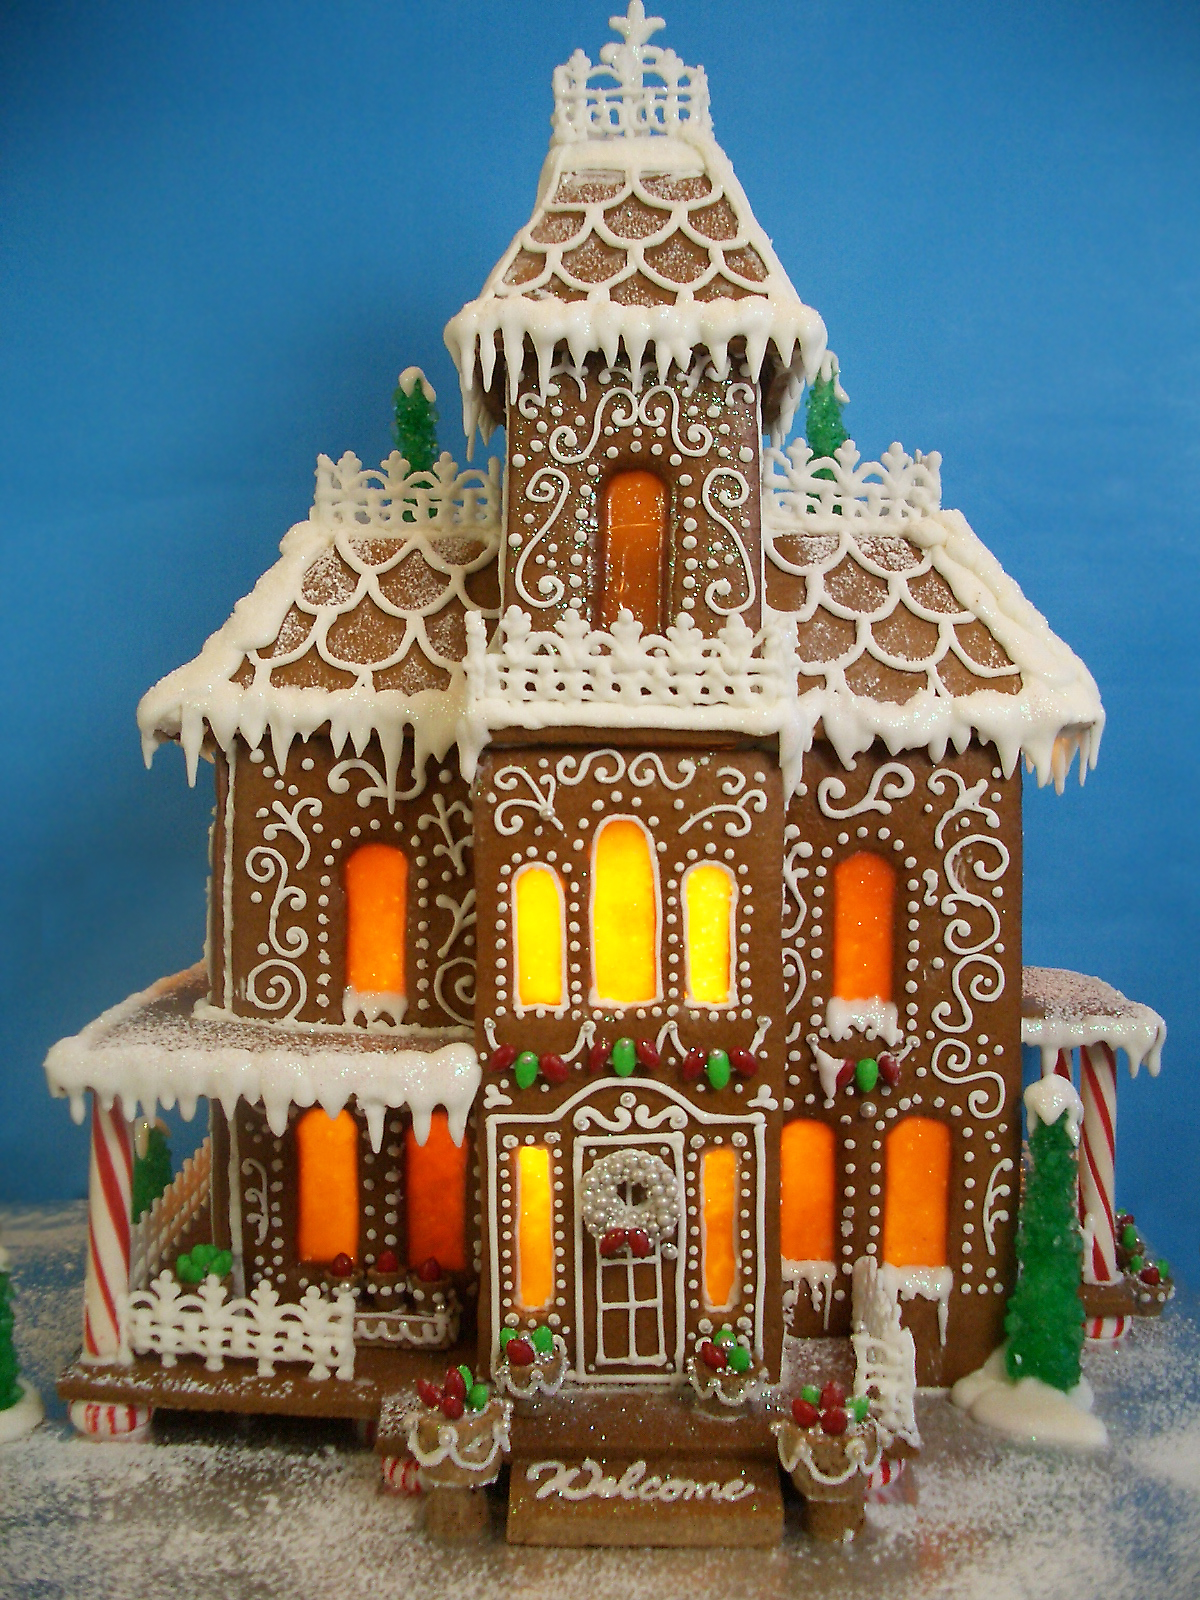 Gingerbread House Ideas, Inspiration, and Holiday Baking.